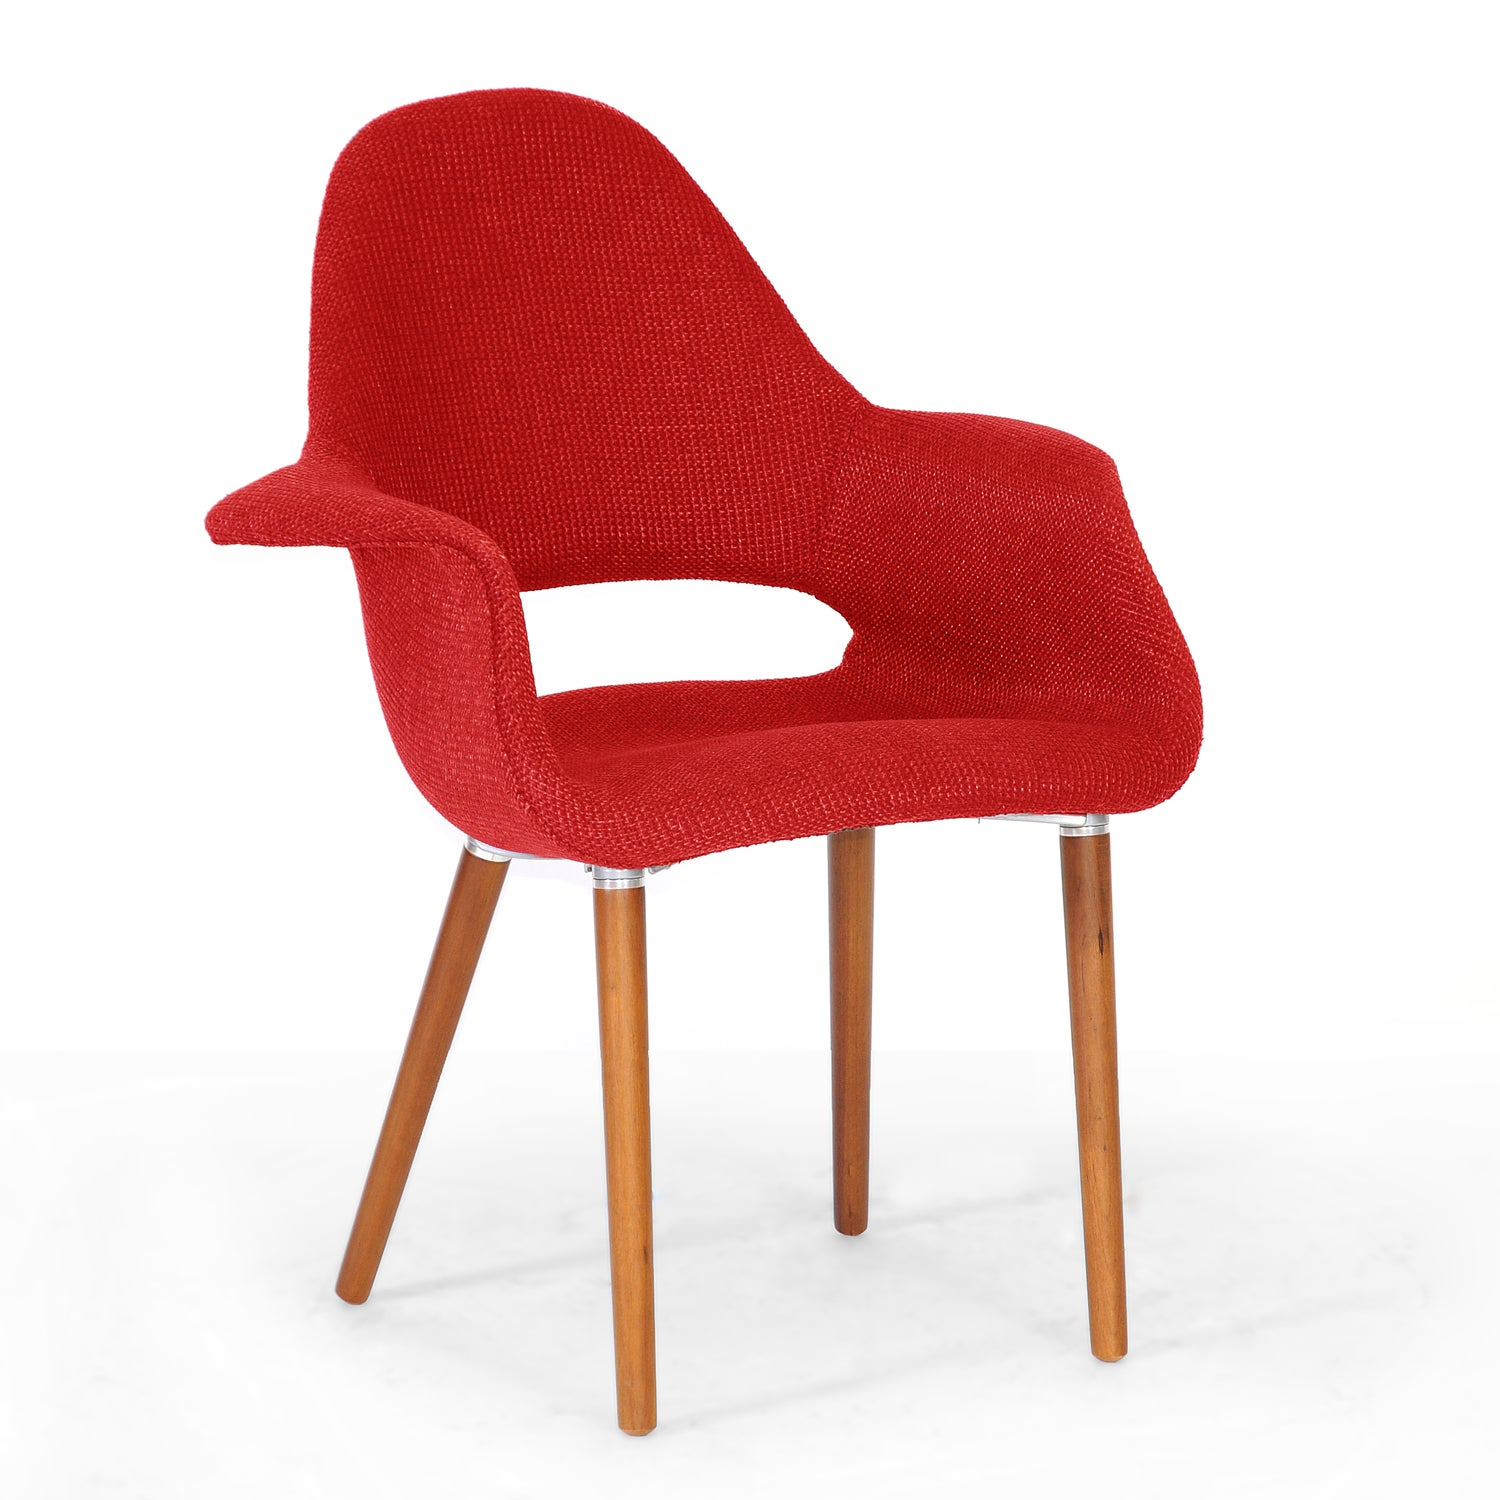 Shop baxton studio forza red fabric mid century modern arm chairs set of 2 free shipping today overstock com 7564267